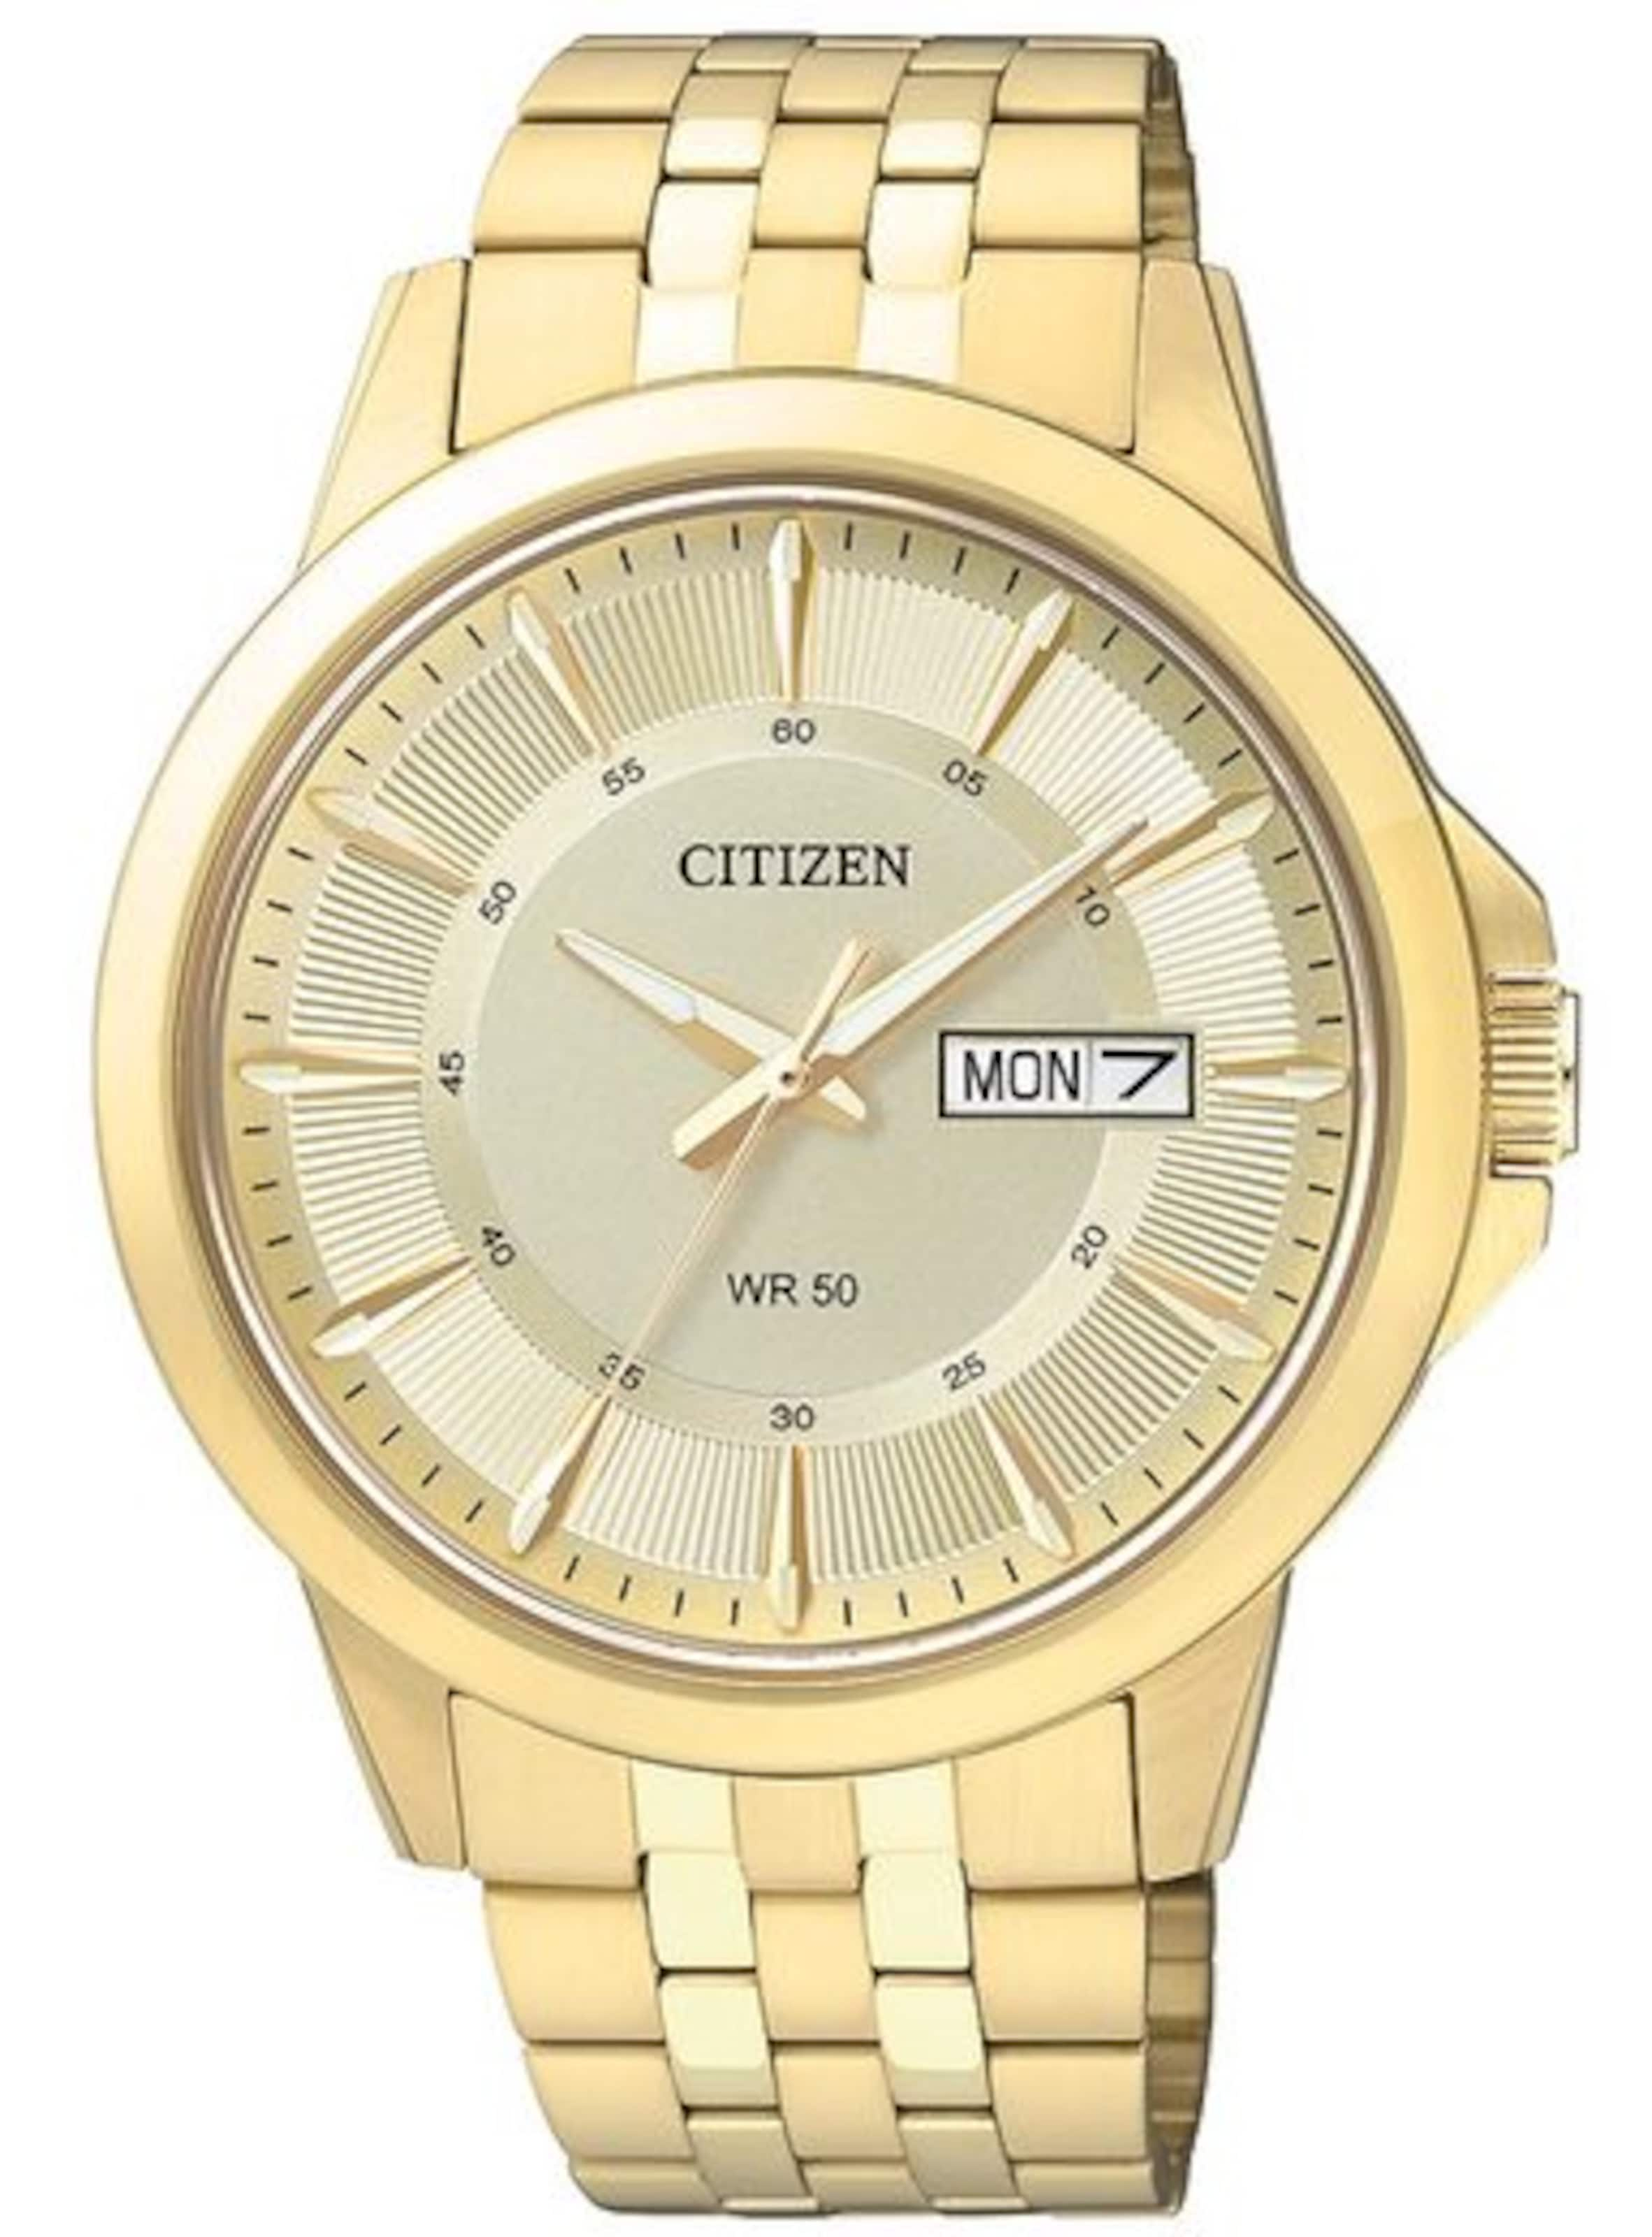 CITIZEN Armbanduhr,